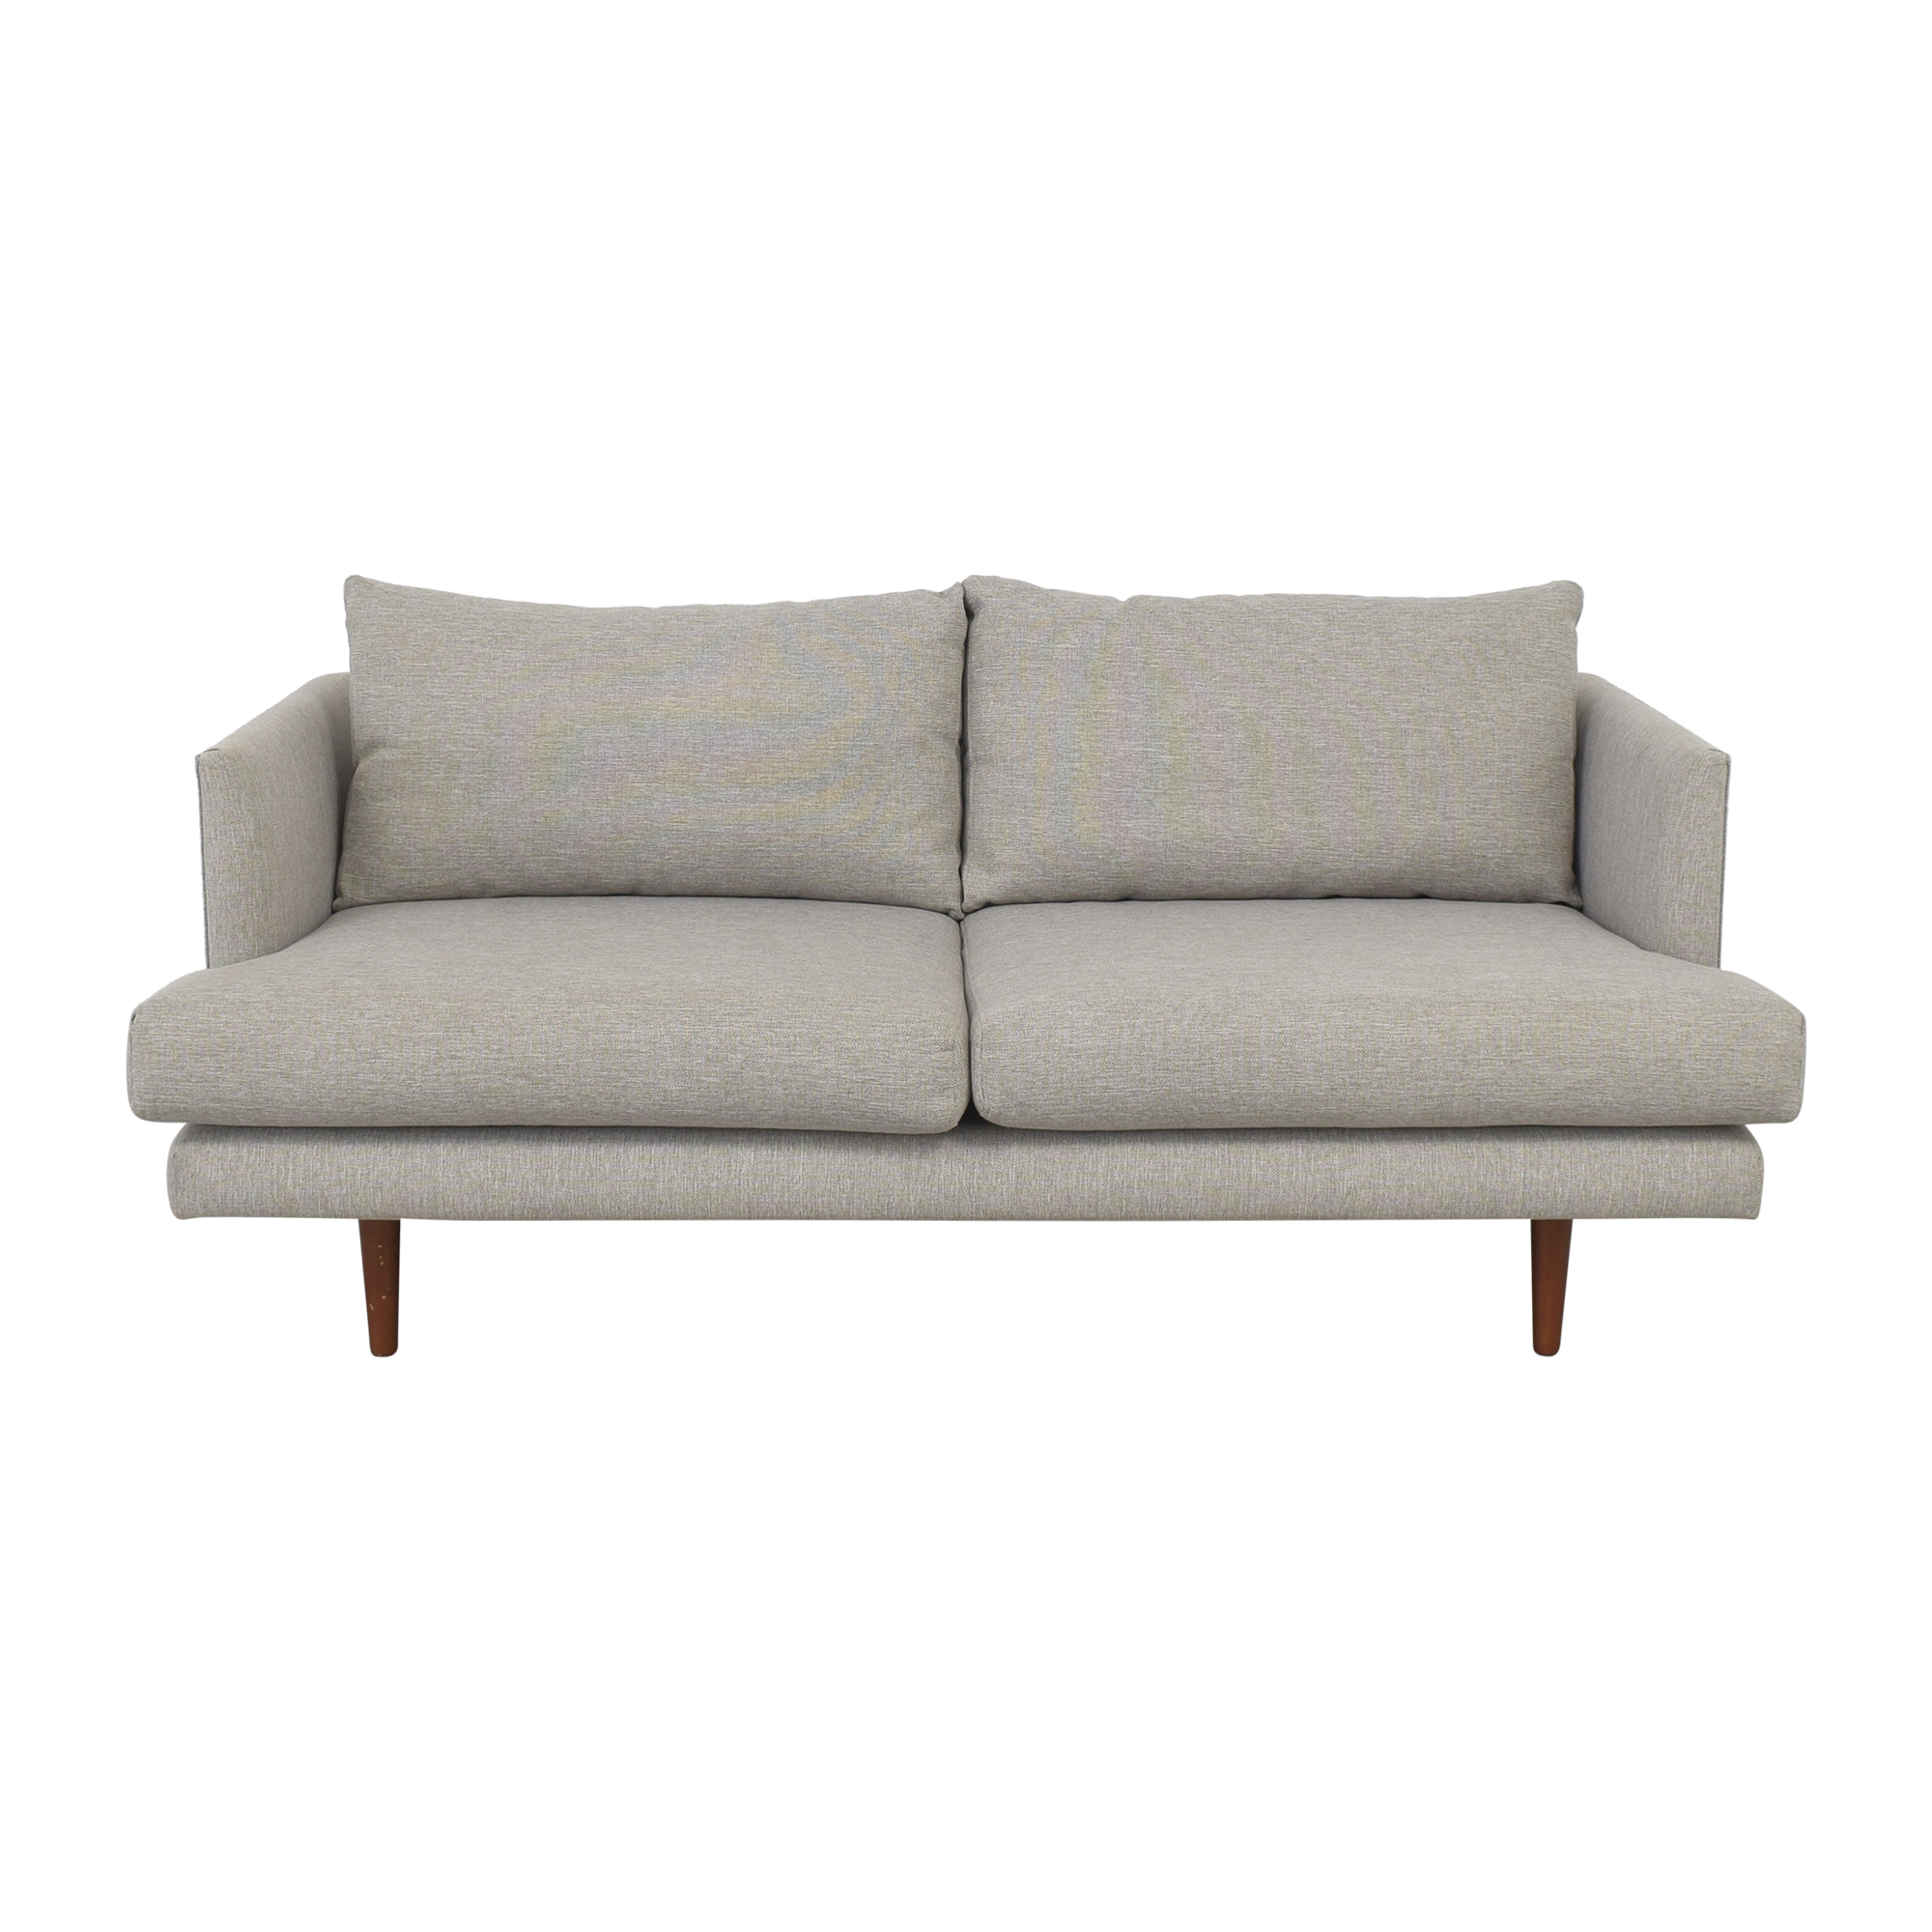 buy Article Article Burrard Loveseat online